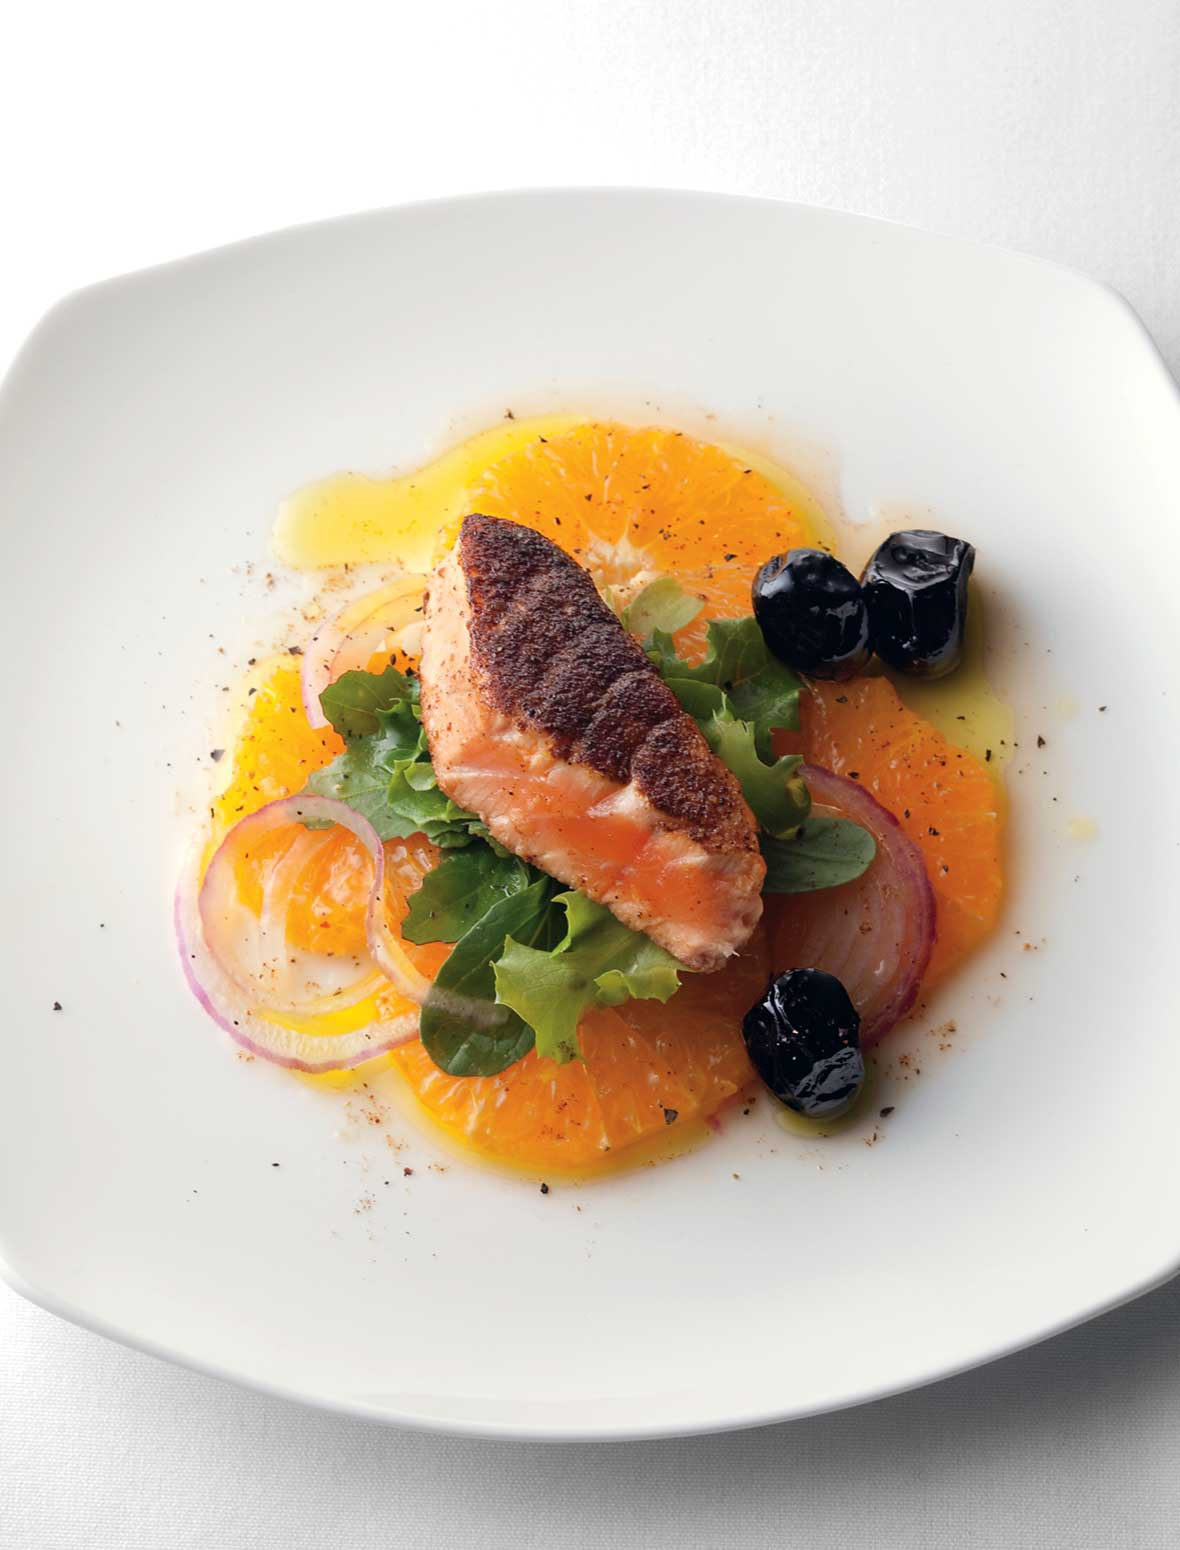 A white plate with a piece of pan-seared Moroccan salmon on a bed of orange slices, red onion, and greens with three black olives on the side.